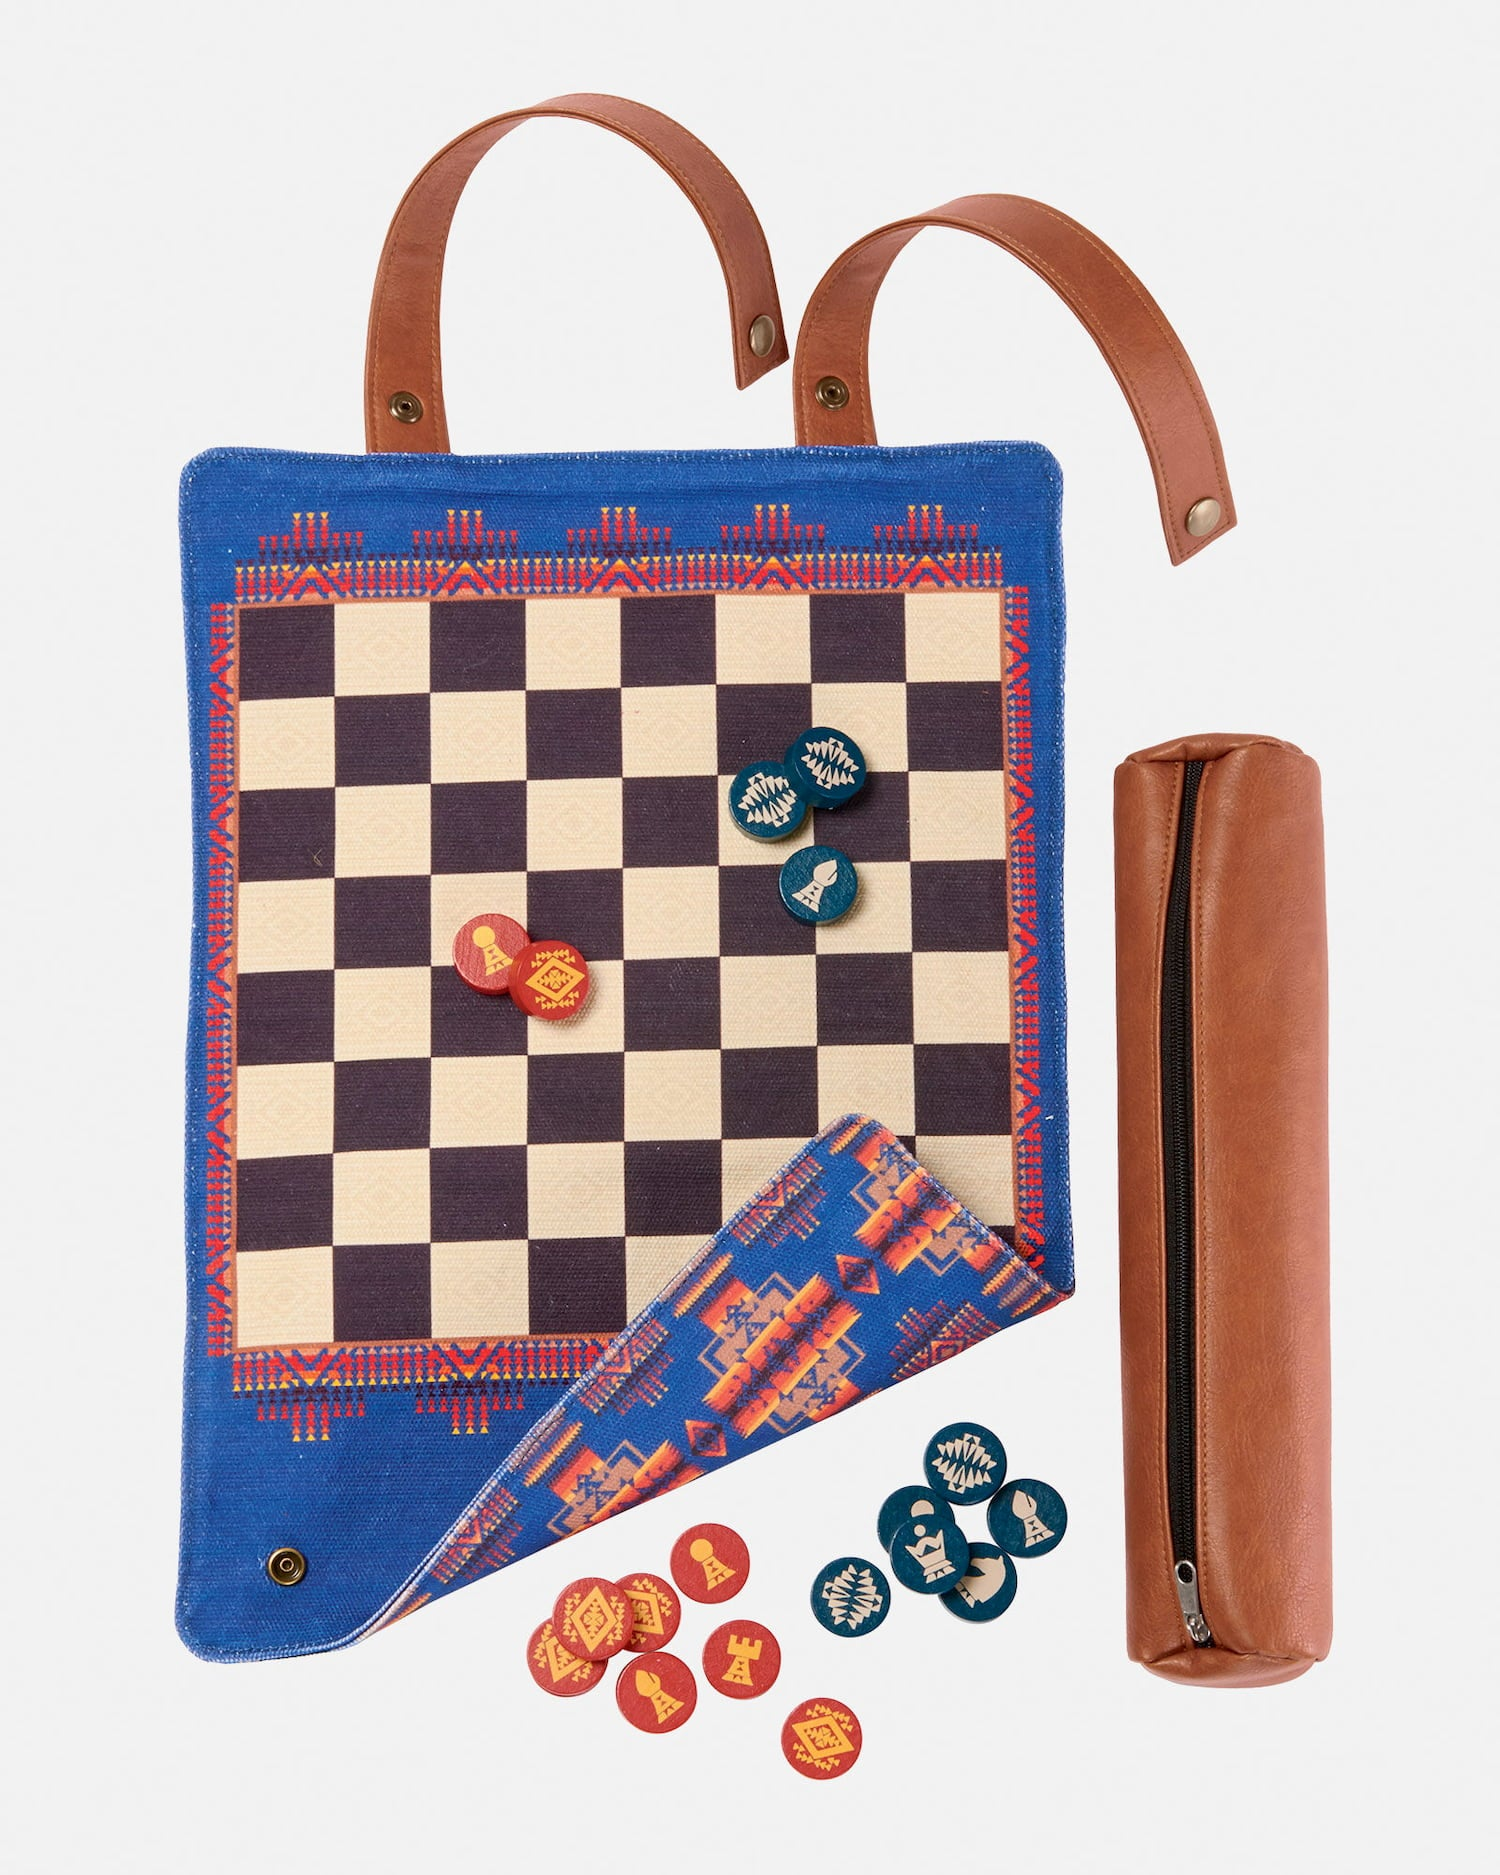 pendleton travel chess set